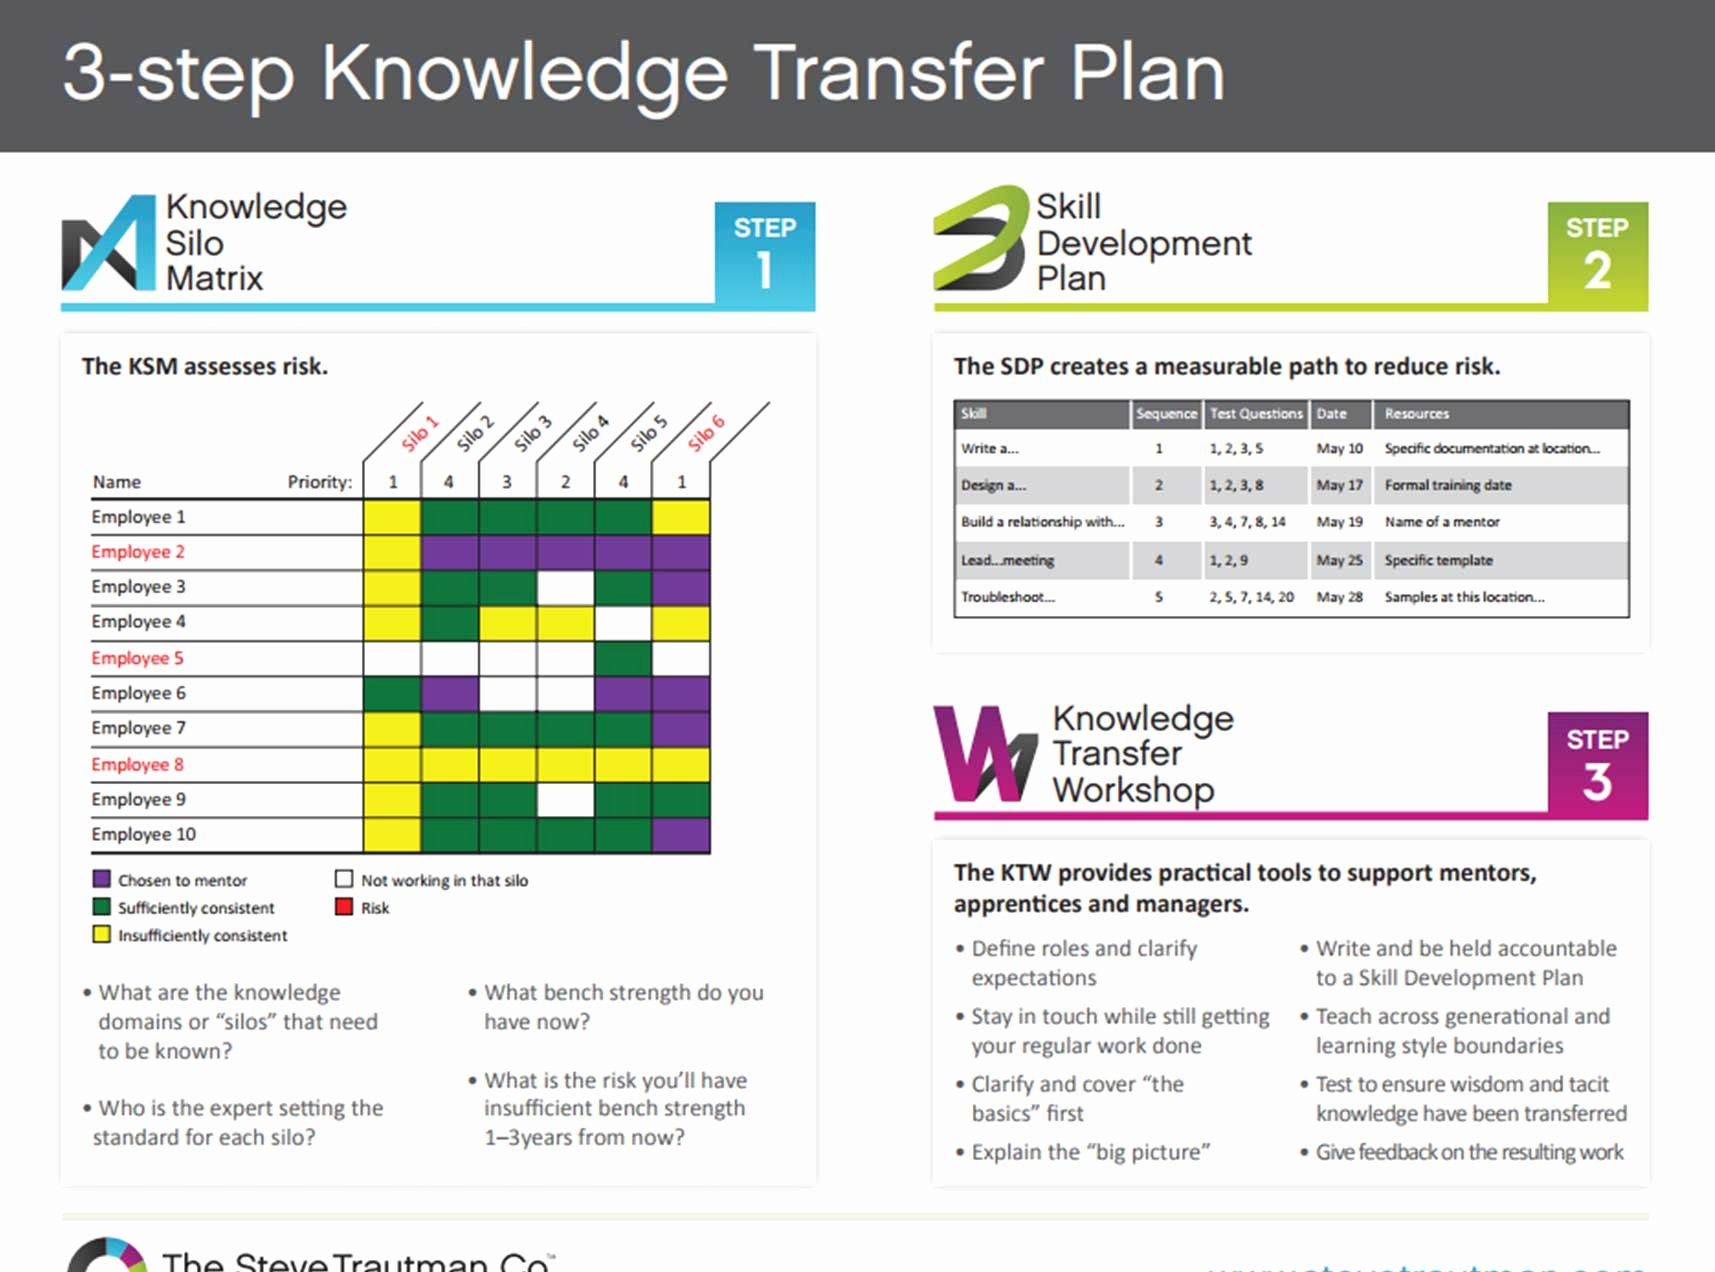 Knowledge Transfer Plan Template Inspirational Knowledge Transfer Template Plan the Steve Trautman Co